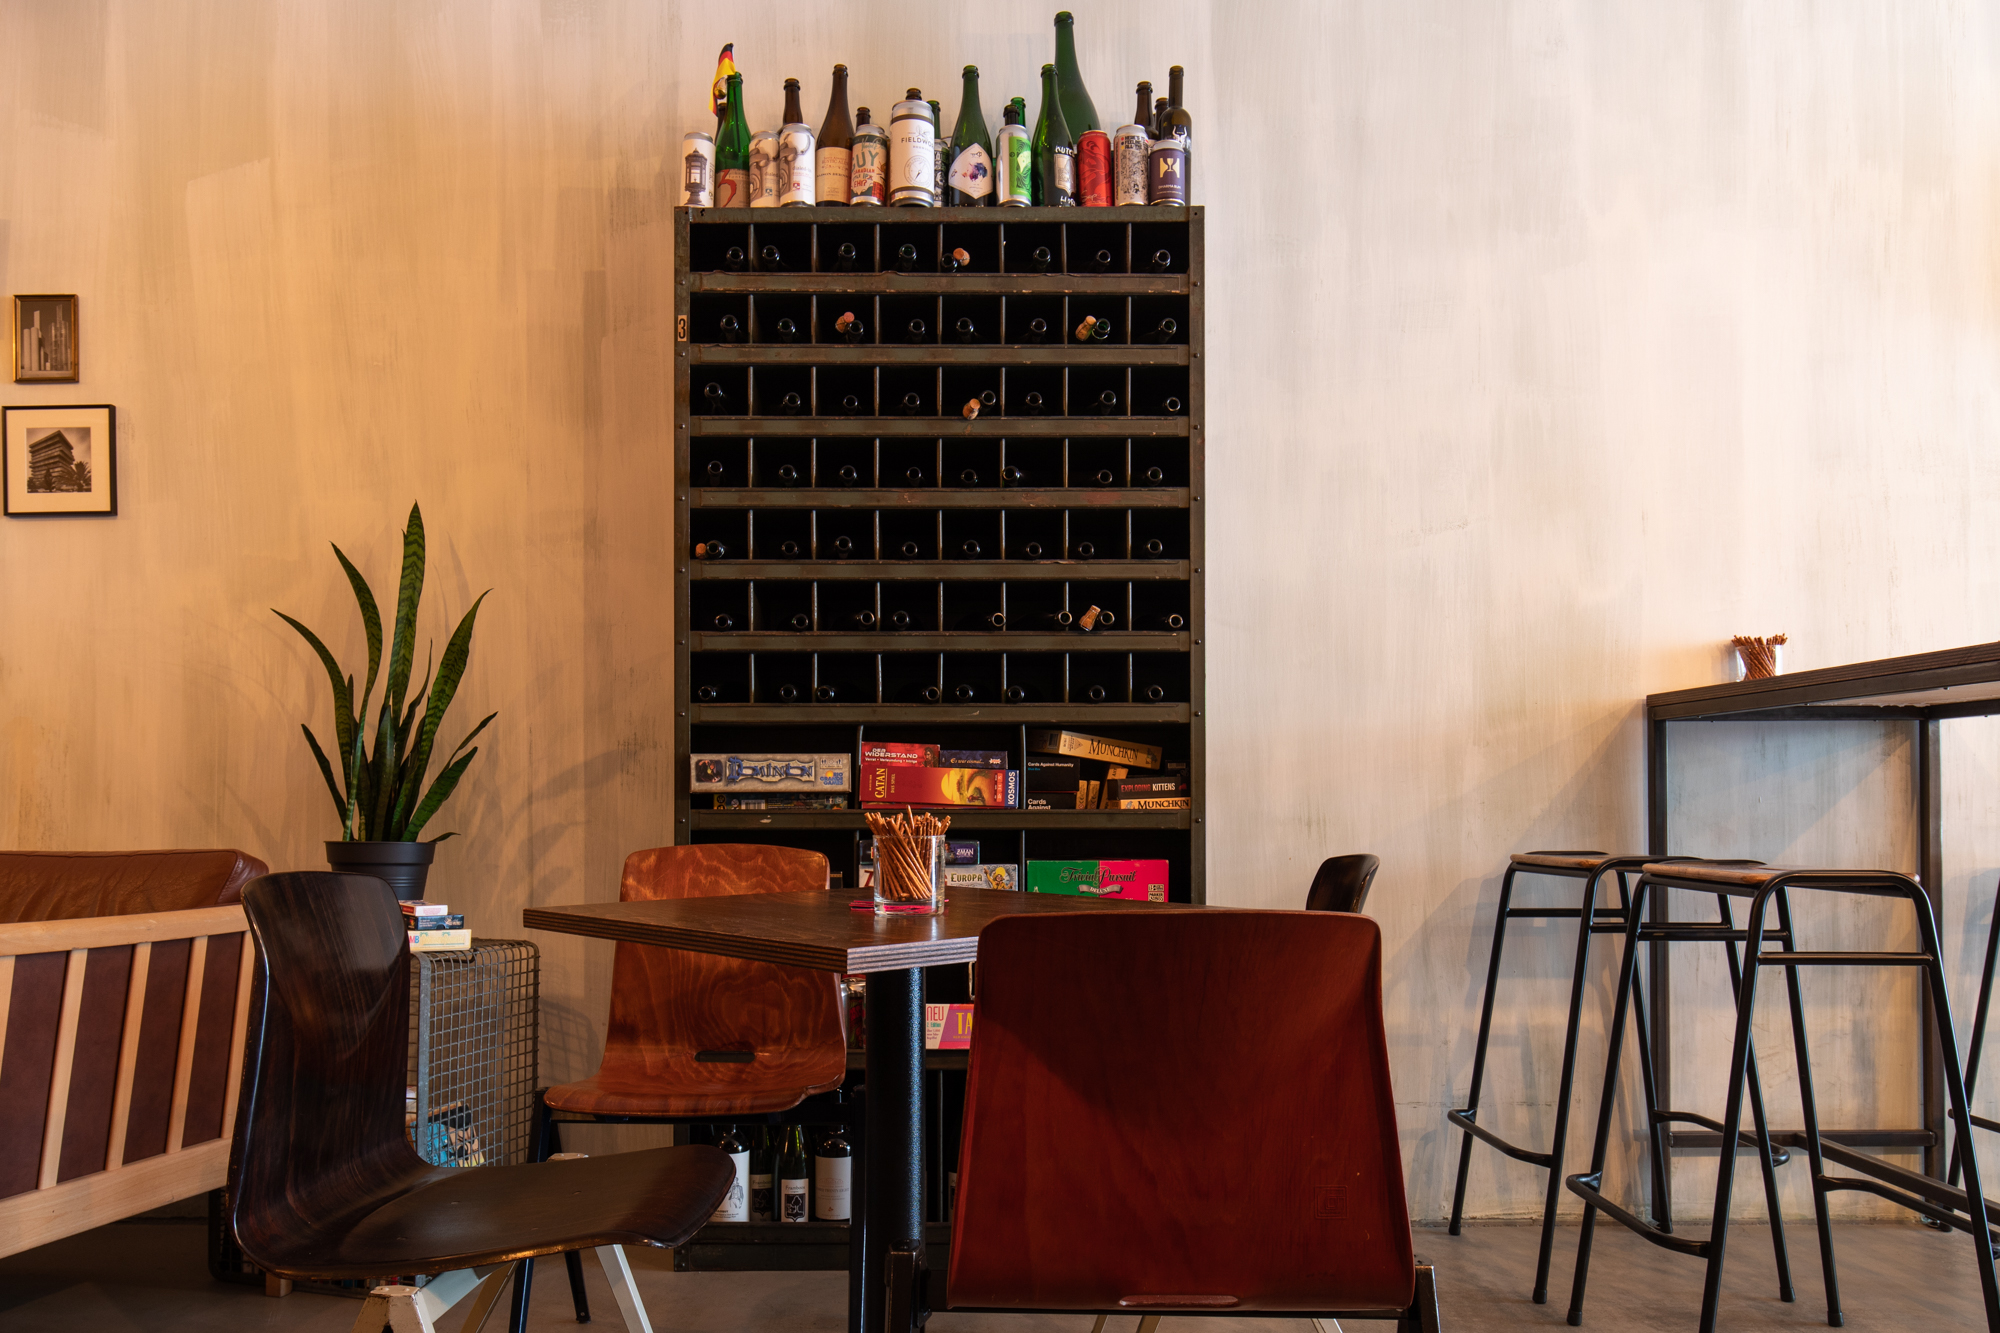 Furniture and Board Games at Muted Horn, a craft beer bar in Berlin Neukölln